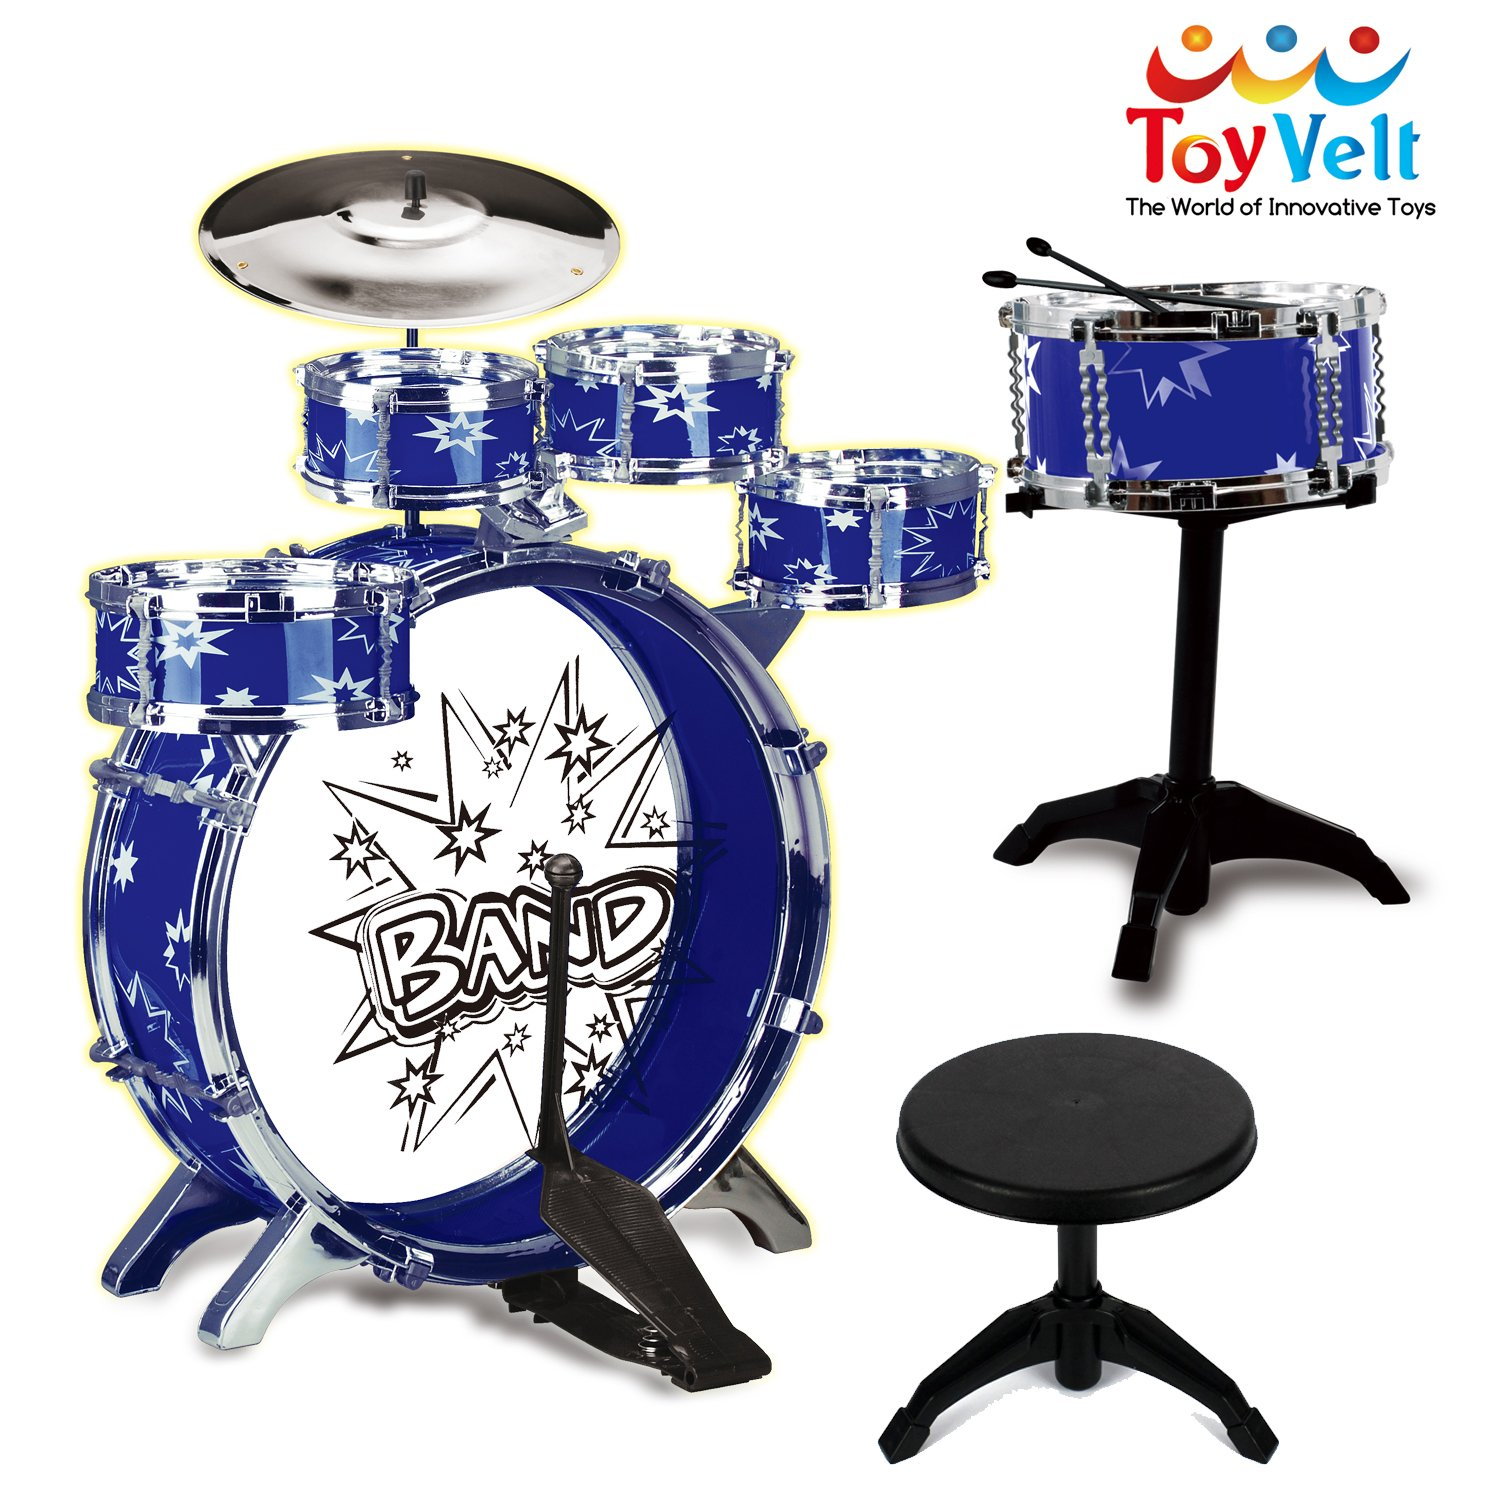 12 Piece Kids Jazz Drum Set - 6 Drums, Cymbal, Chair, Kick Pedal, 2 Drumsticks, Stool - Little Rockstar Kit to Stimulating Children's Creativity, - Ideal Gift Toy for Kids, Teens, Boys & Girls by ToyVelt